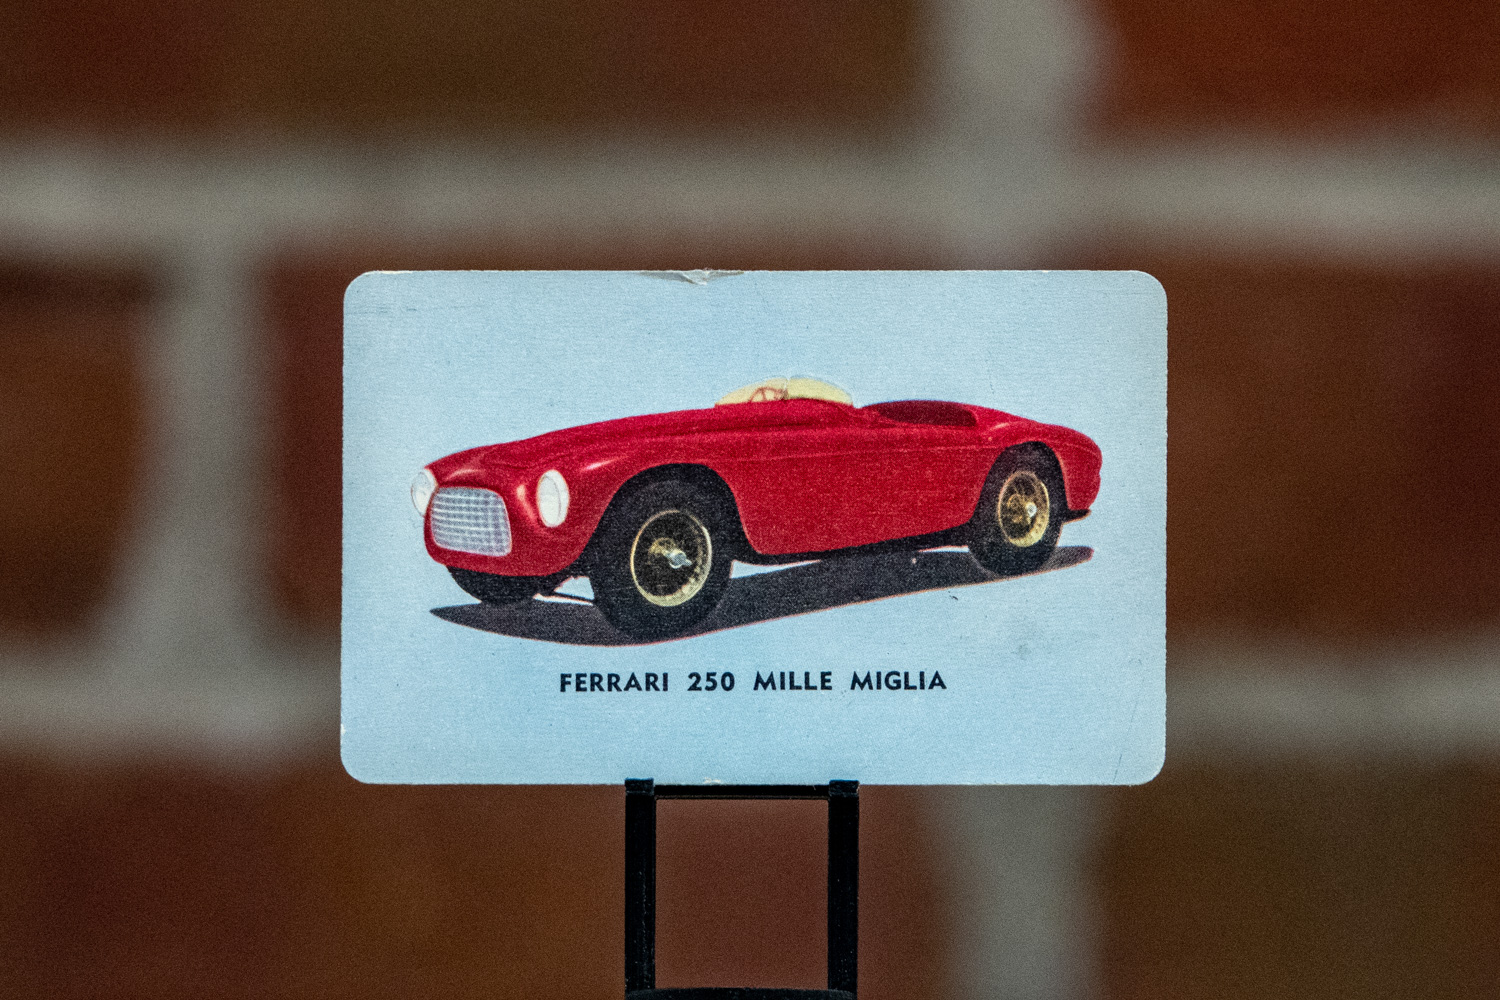 Considering that the cards were included in packages of cookies, finding one without a flaw—this Ferrari 250 Mille Miglia card has a dent at the top, for instance—can be difficult.